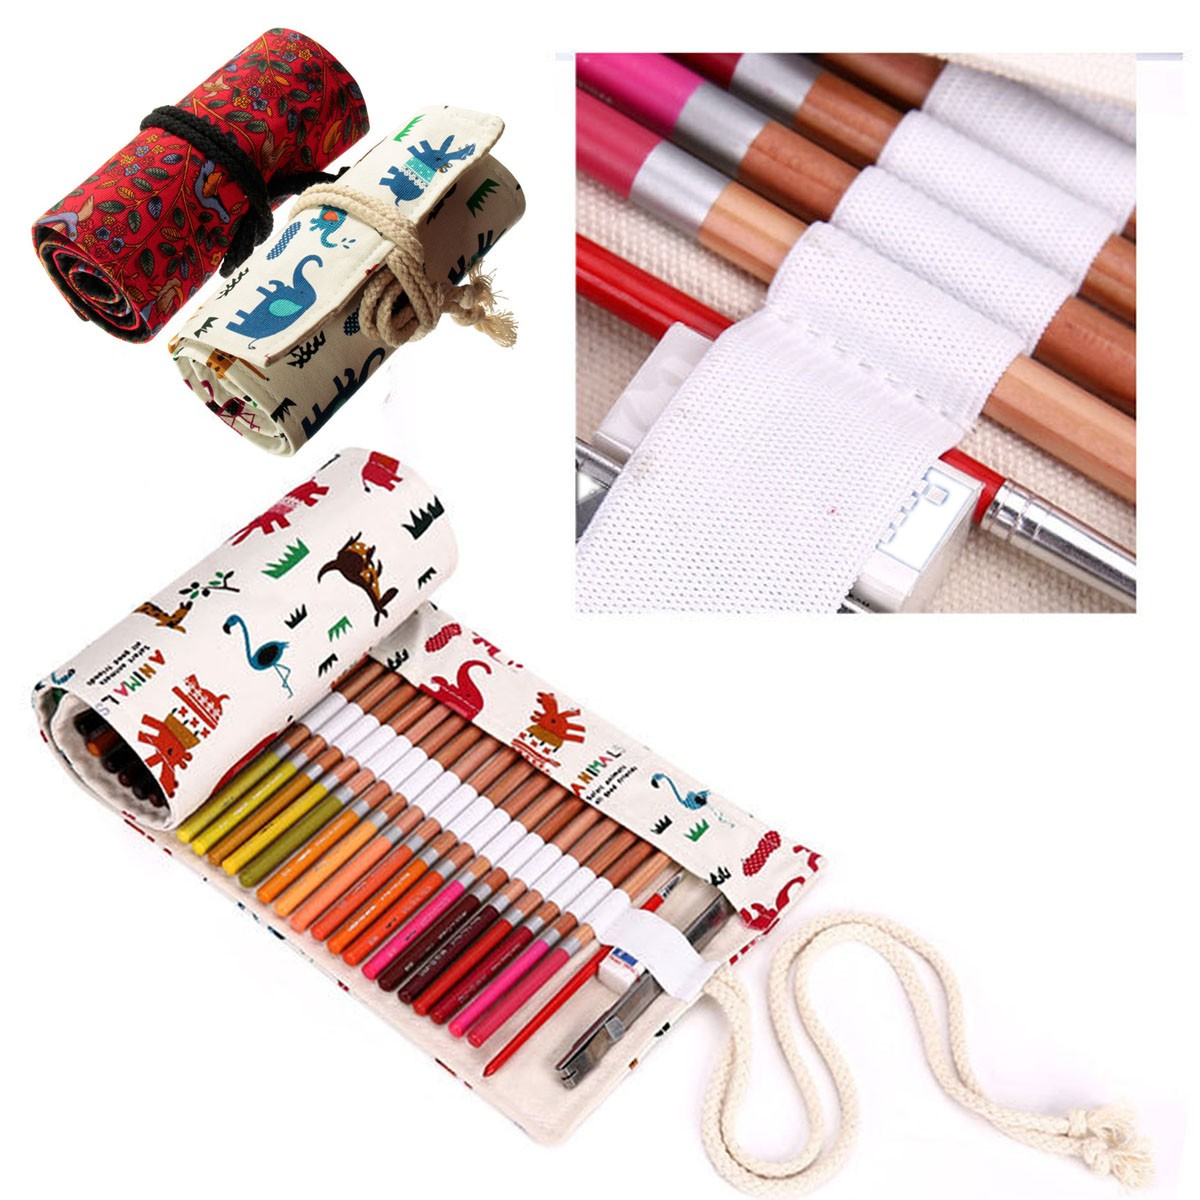 Canvas 48 Colored Pencil Wrap Roll Up Case, Travel Pen Holder Organizer, Best Gift for Kids Adult